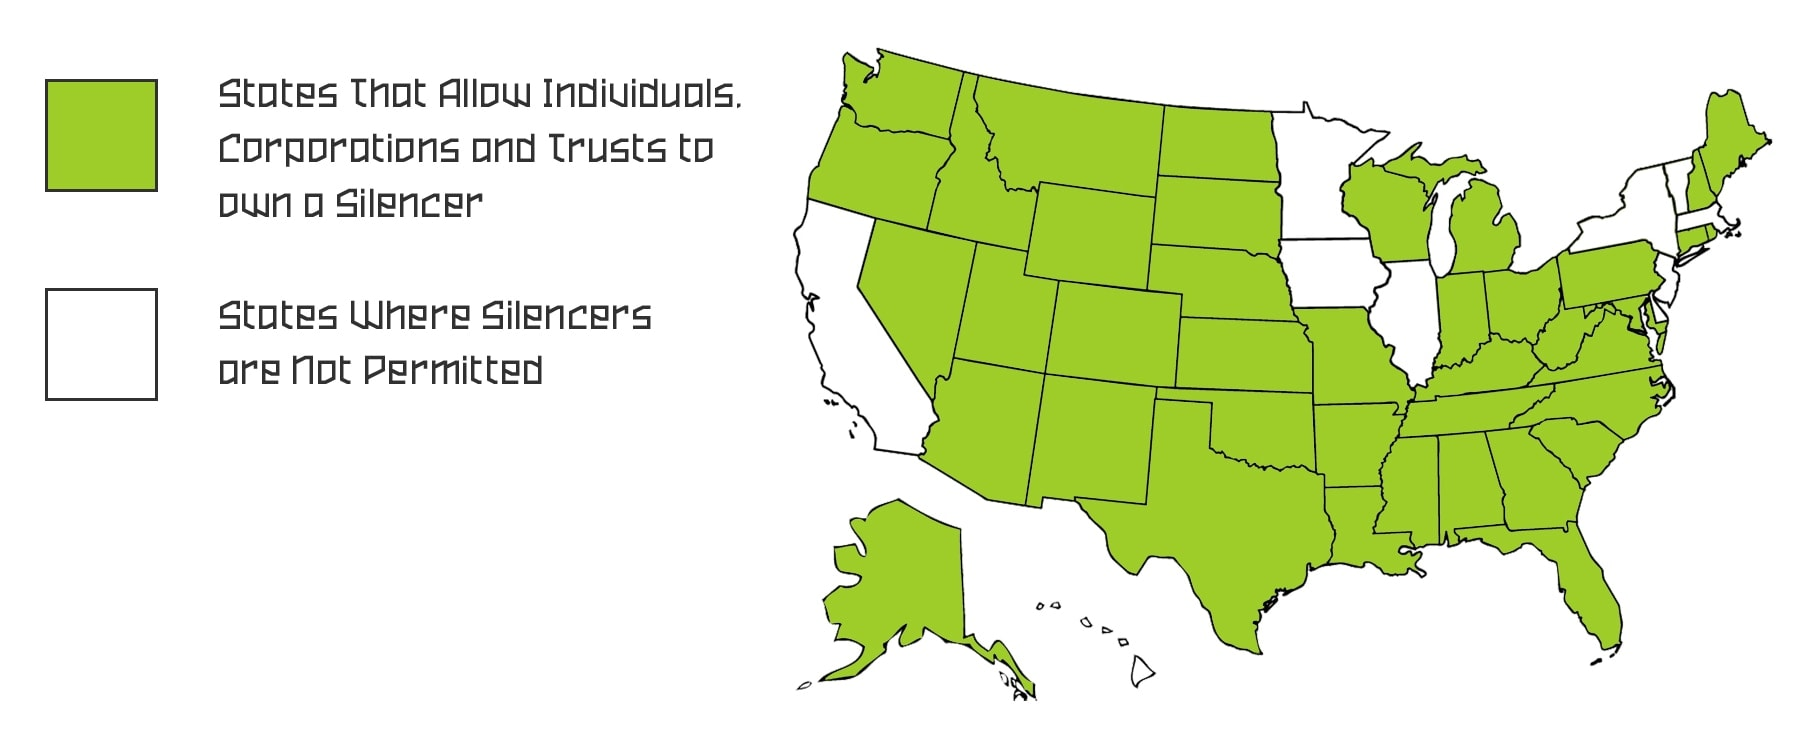 It is legal to own a silencer in the green states.